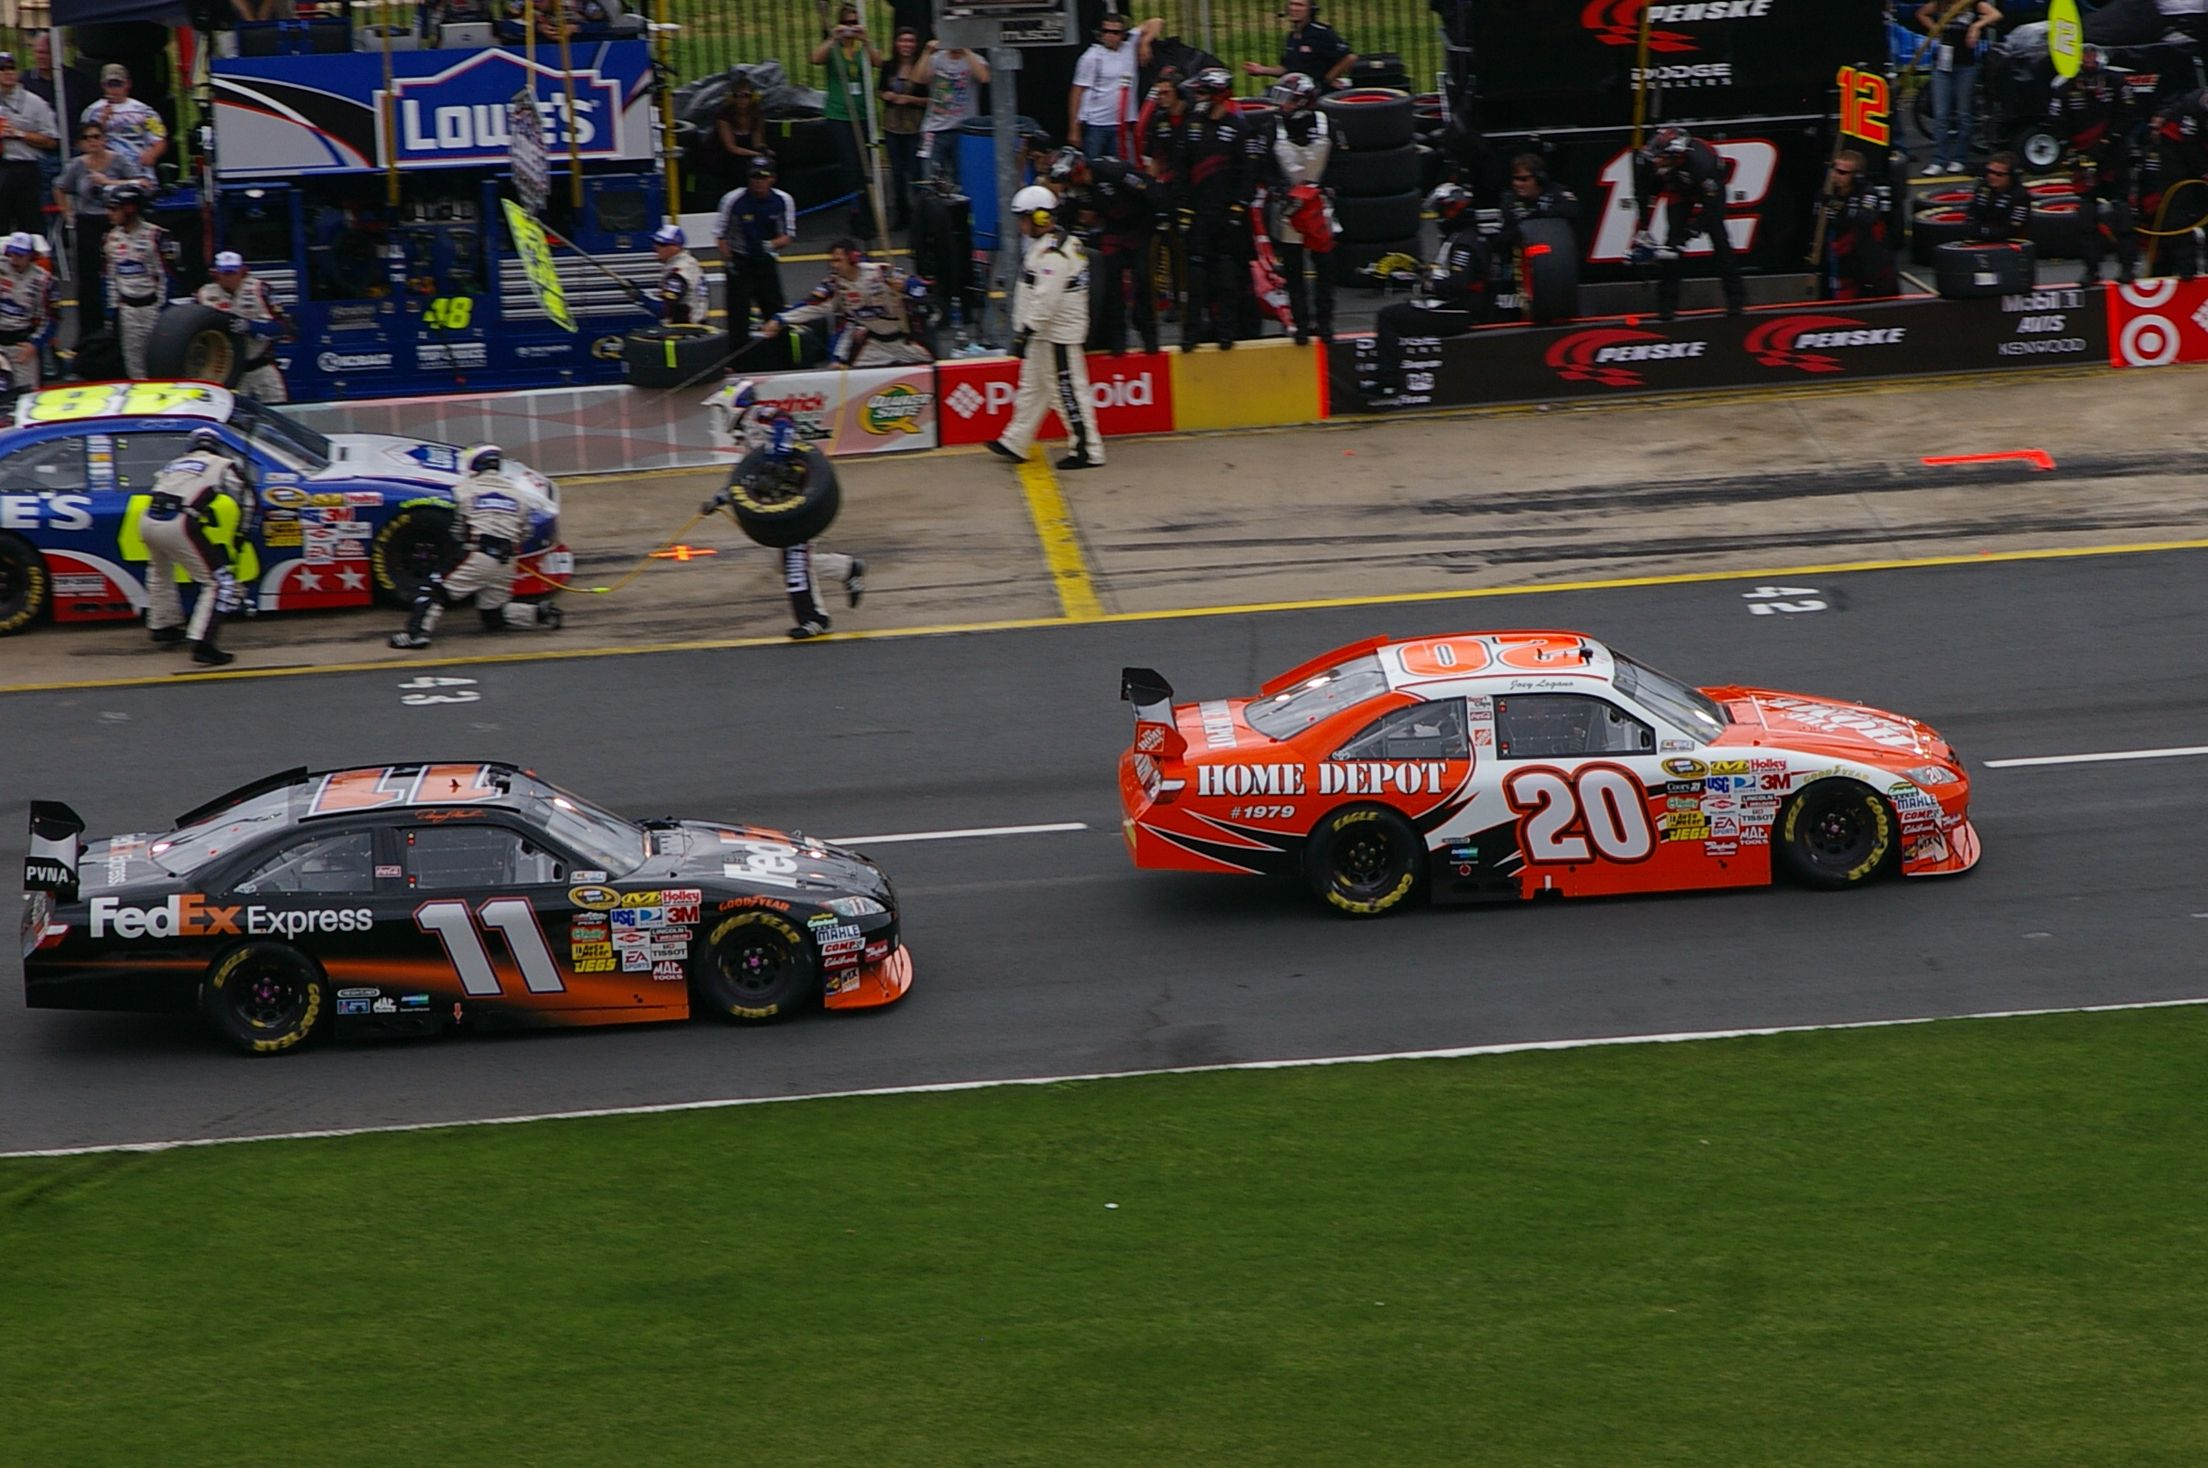 2009 Coca Cola 600 At Lowe S Motor Sdway Denny Hamlin 11 Fedex Joey Logano 20 Home Depot Nascar Nascarthrowback Cc Licensed Photo By Tequila Mike